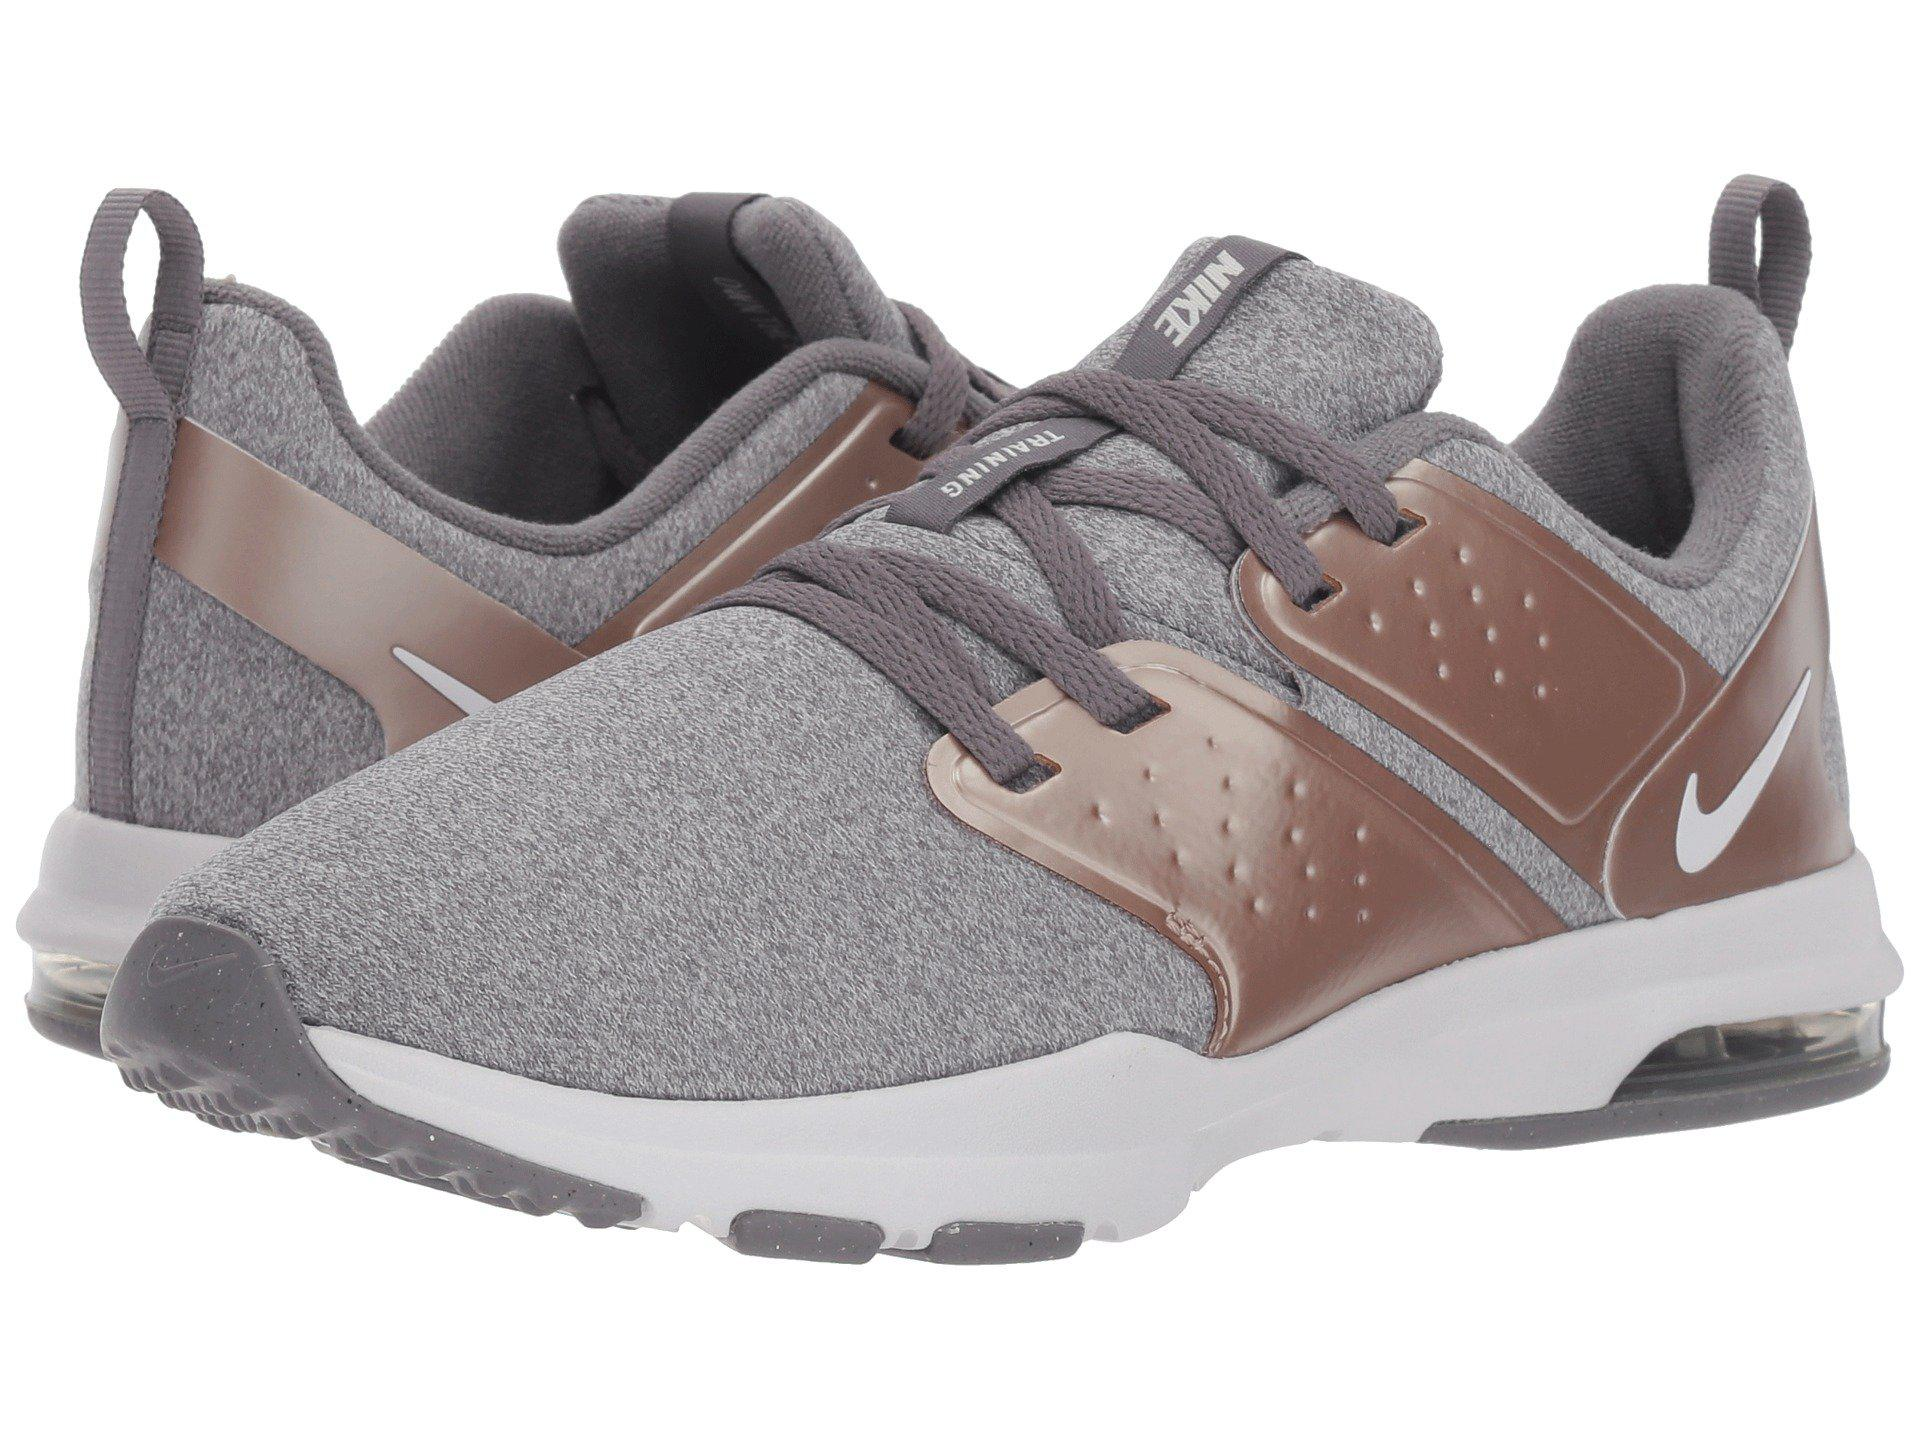 56ddbc358a0 Lyst - Nike Air Bella Tr Prm (gunsmoke vast Grey diffused Taupe ...